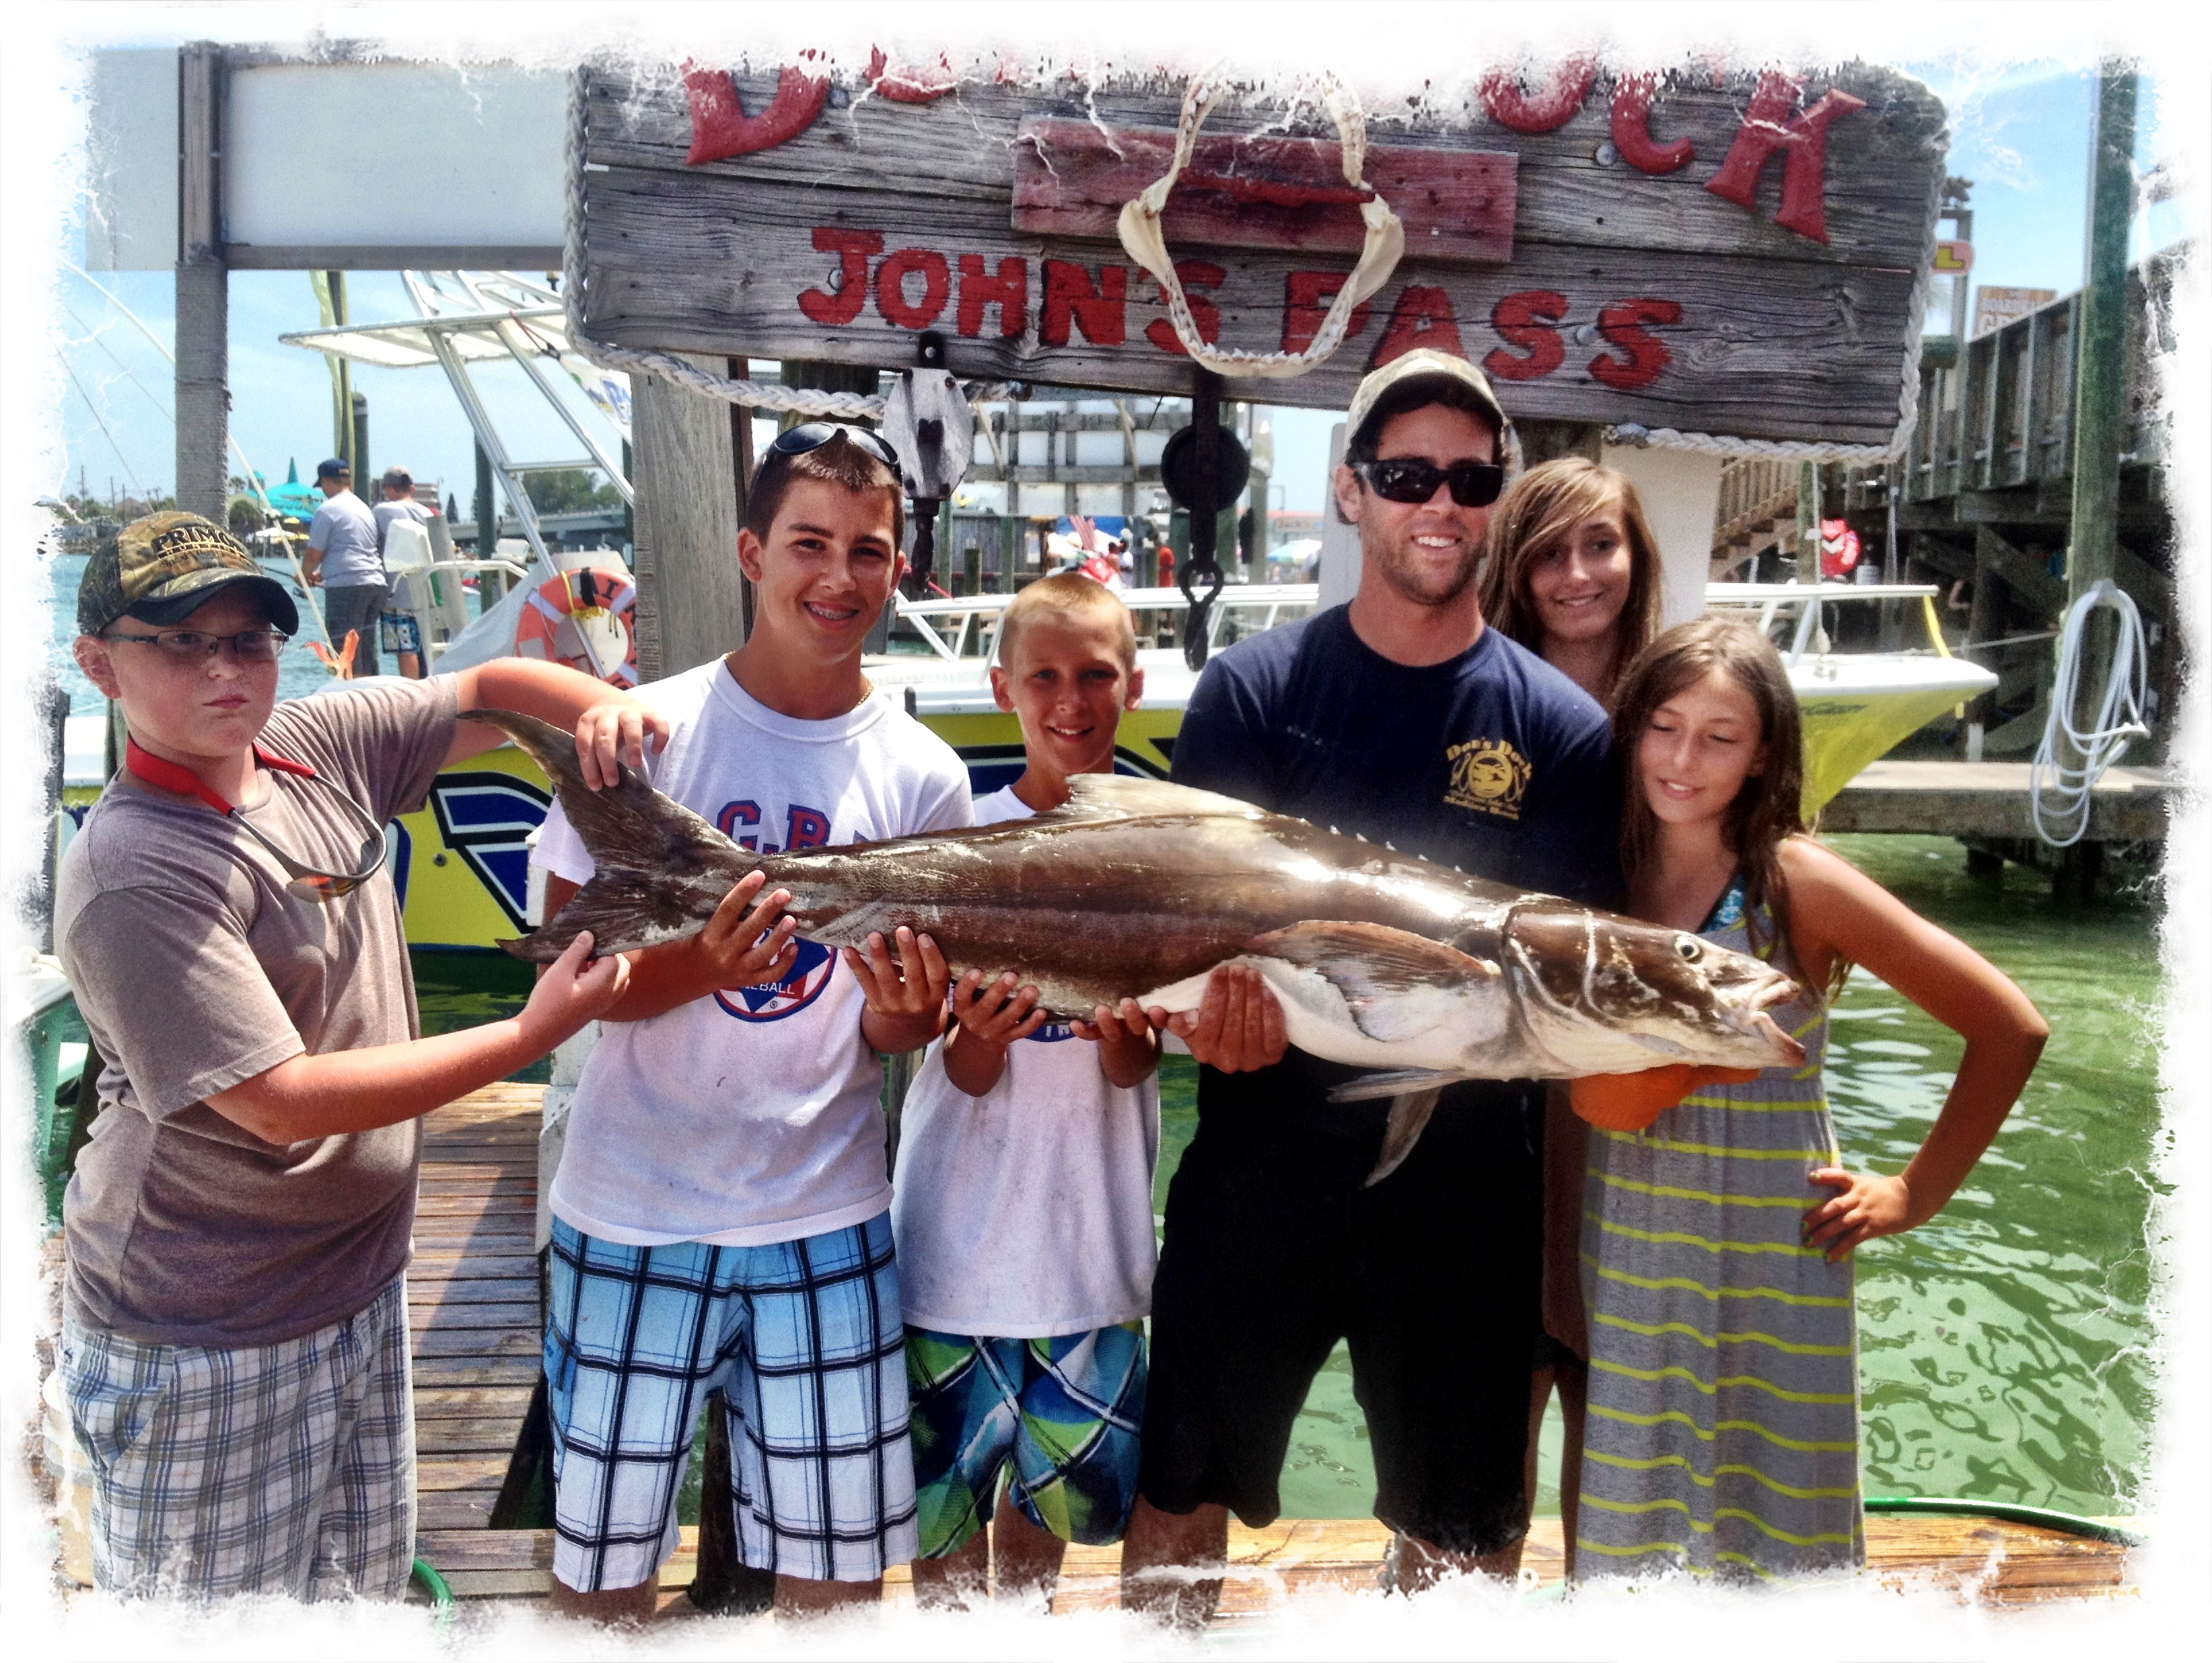 Deep sea fishing Johns Pass, Florida